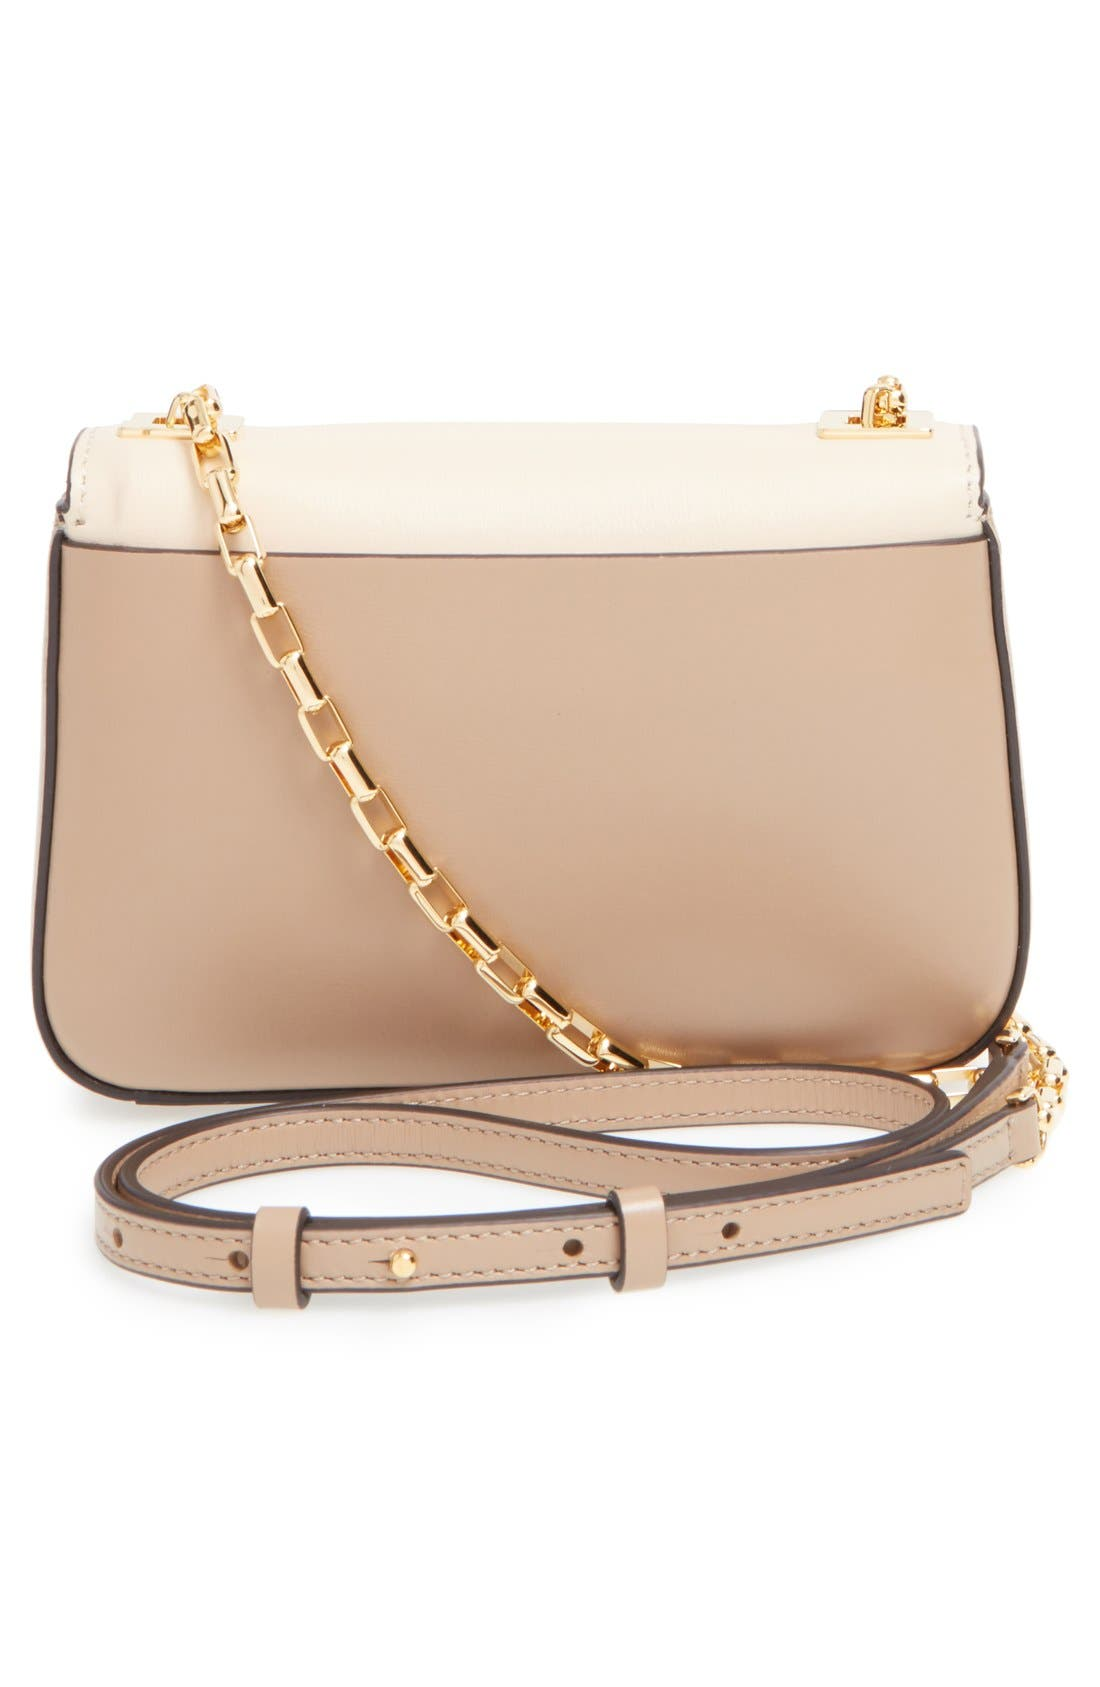 Alternate Image 3  - Michael Kors 'Small Gia' Chain Strap Leather Shoulder Bag